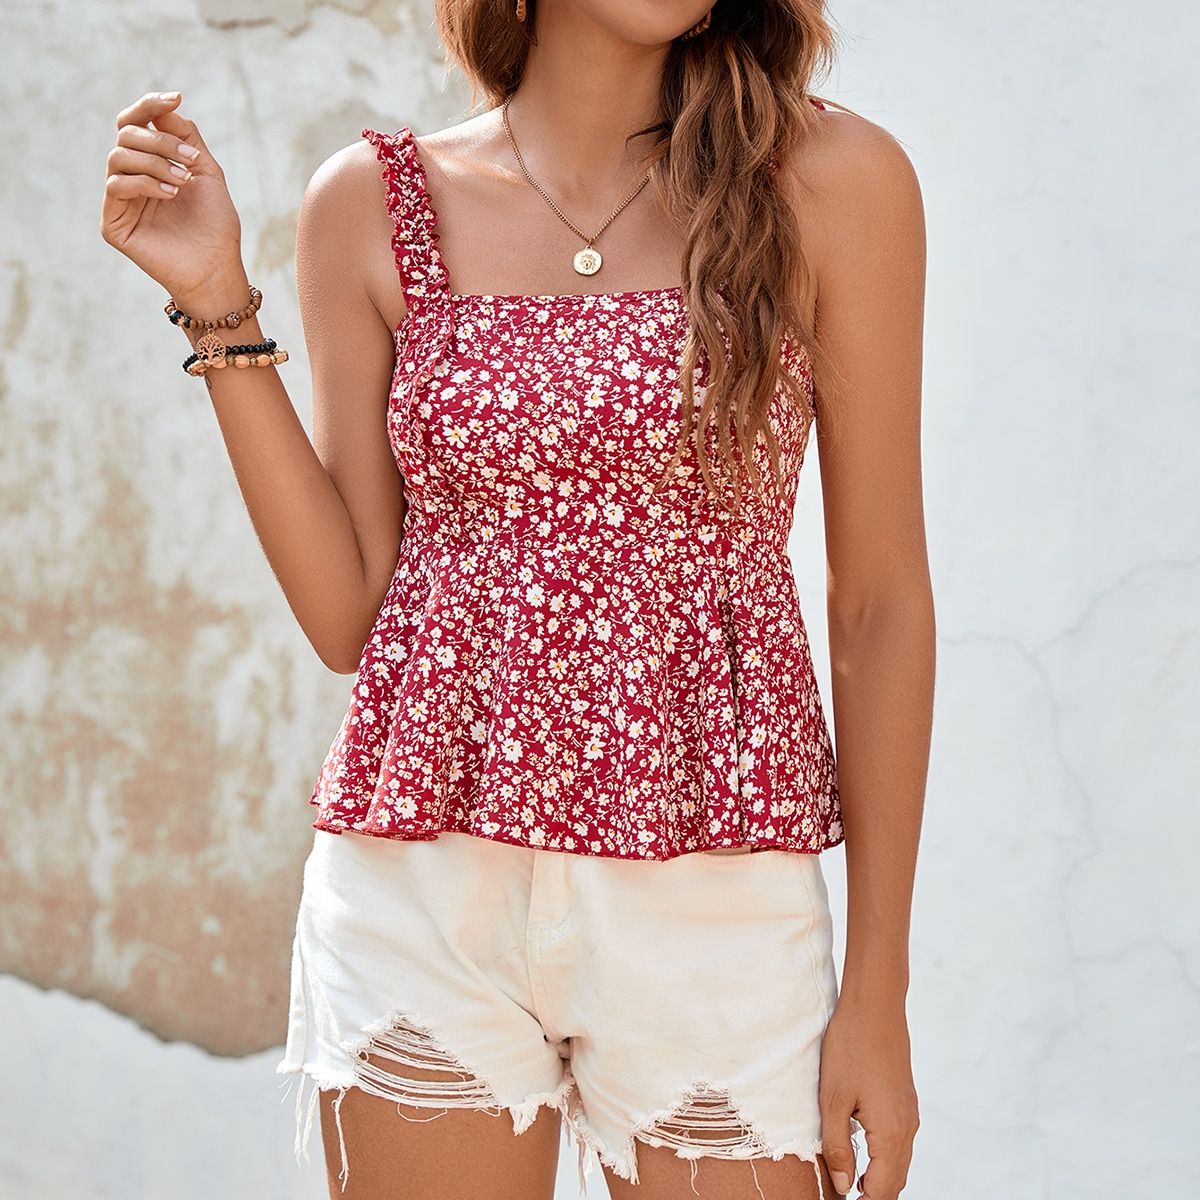 Frilled Strap Ditsy Floral Cami Top, SHEIN  - buy with discount